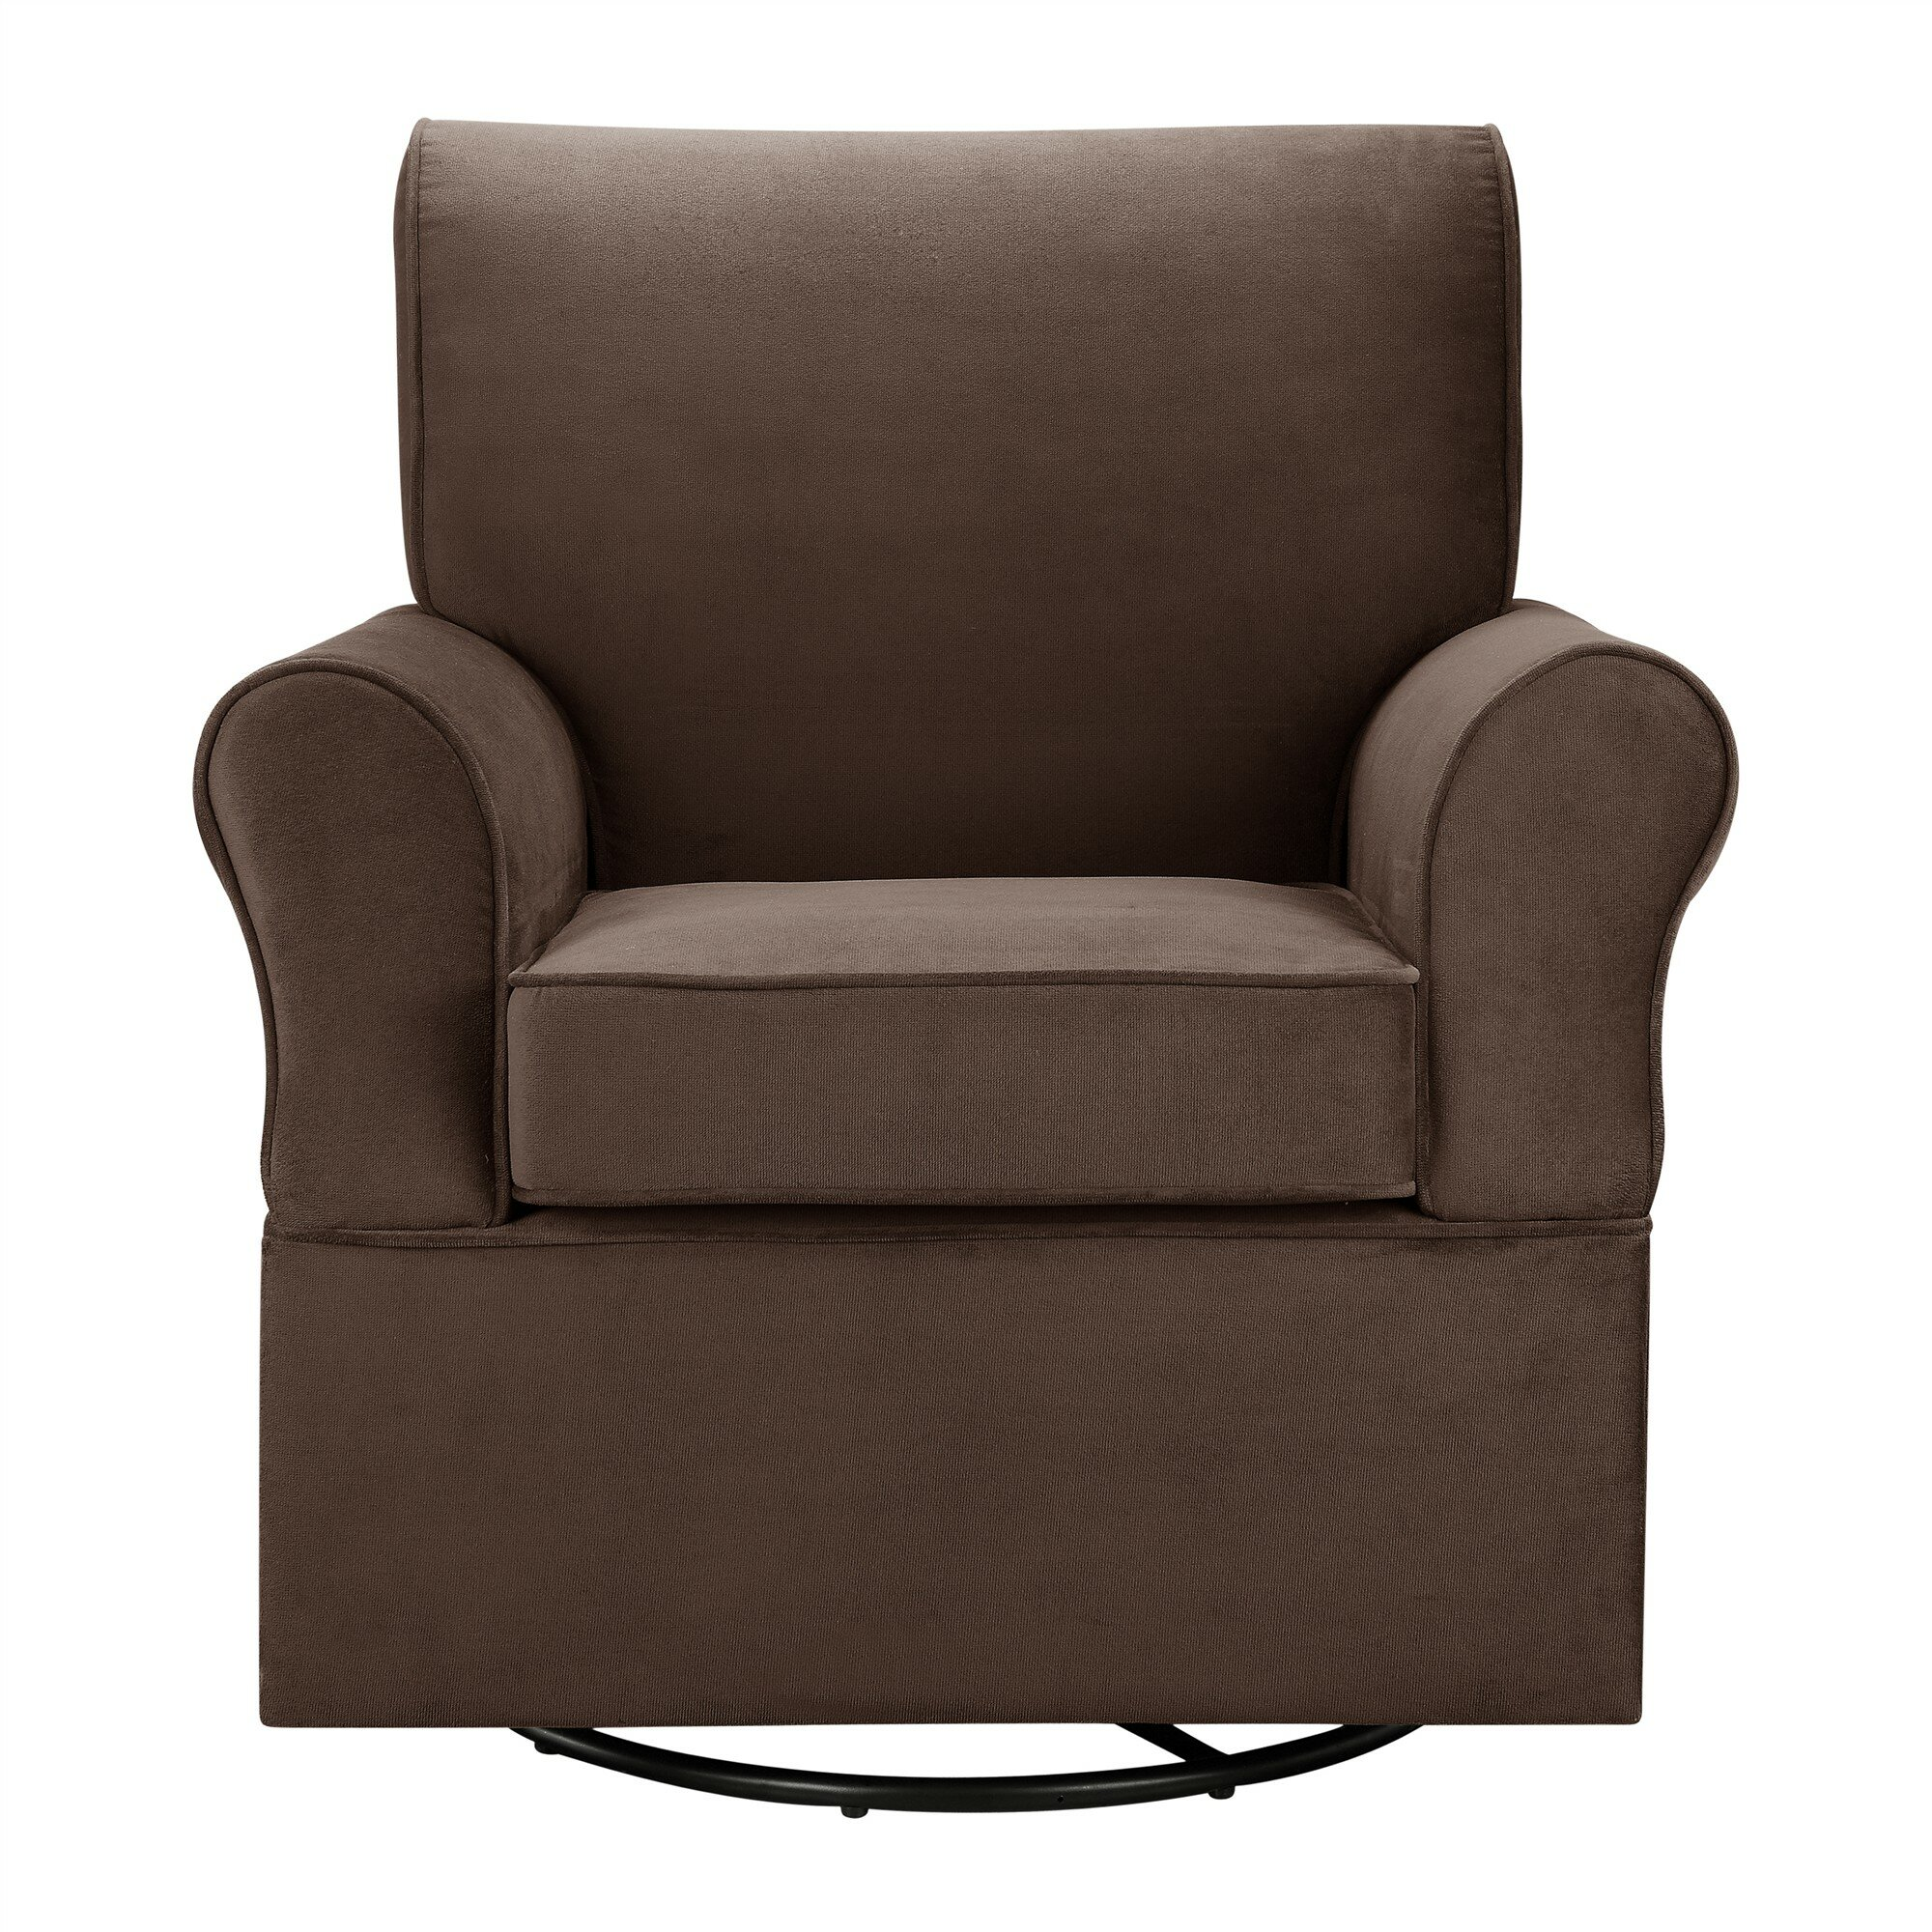 viv rae kimberley swivel glider and ottoman reviews wayfair. Black Bedroom Furniture Sets. Home Design Ideas